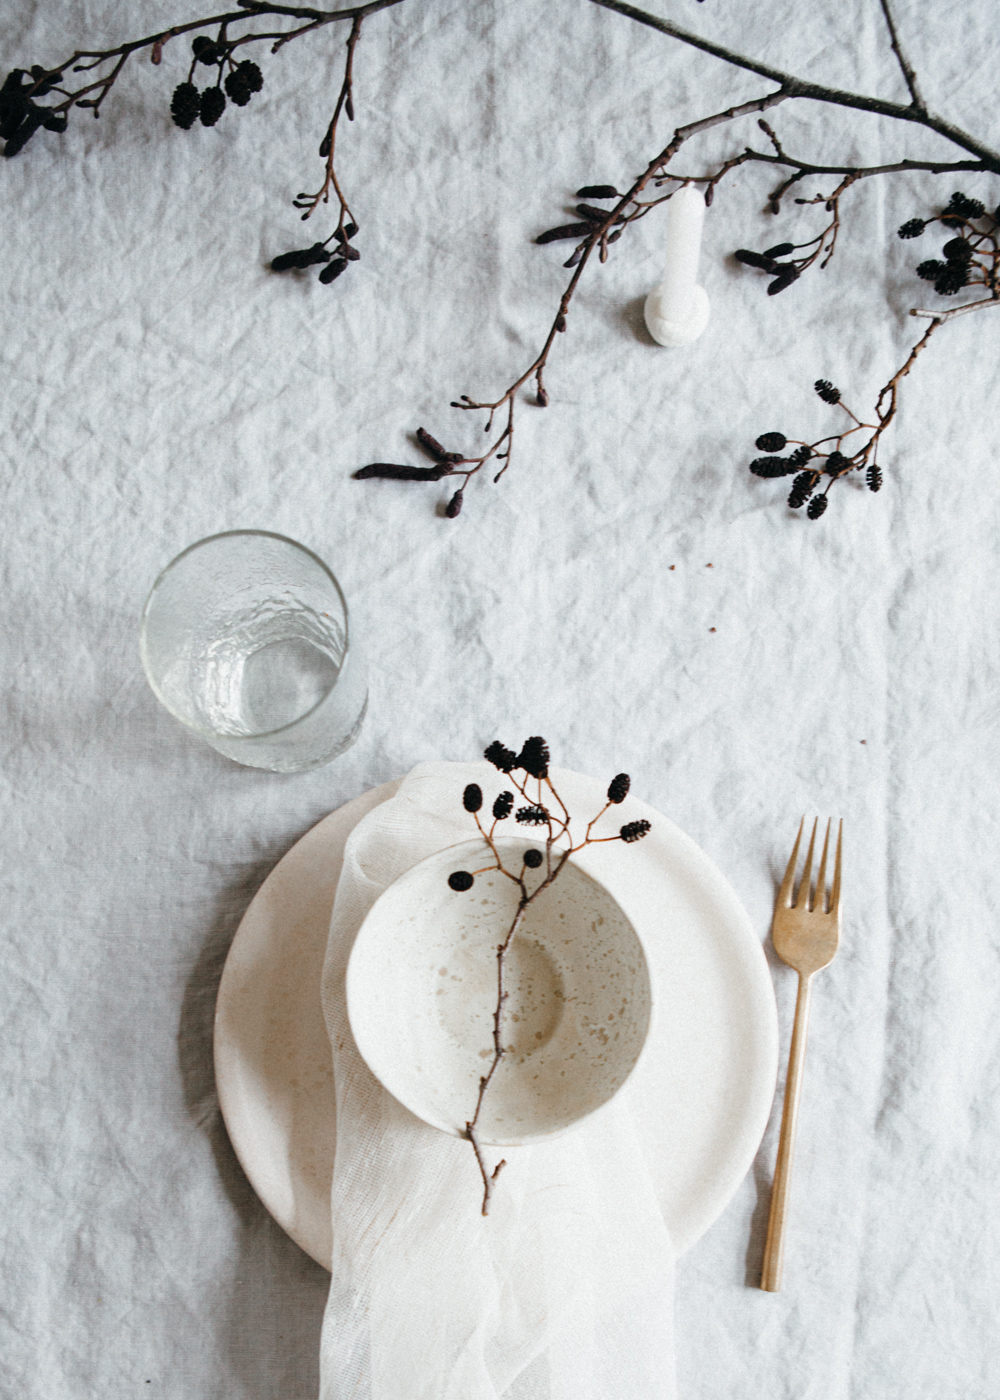 winter-tablesetting-inspire-styling-3-of-17.jpg